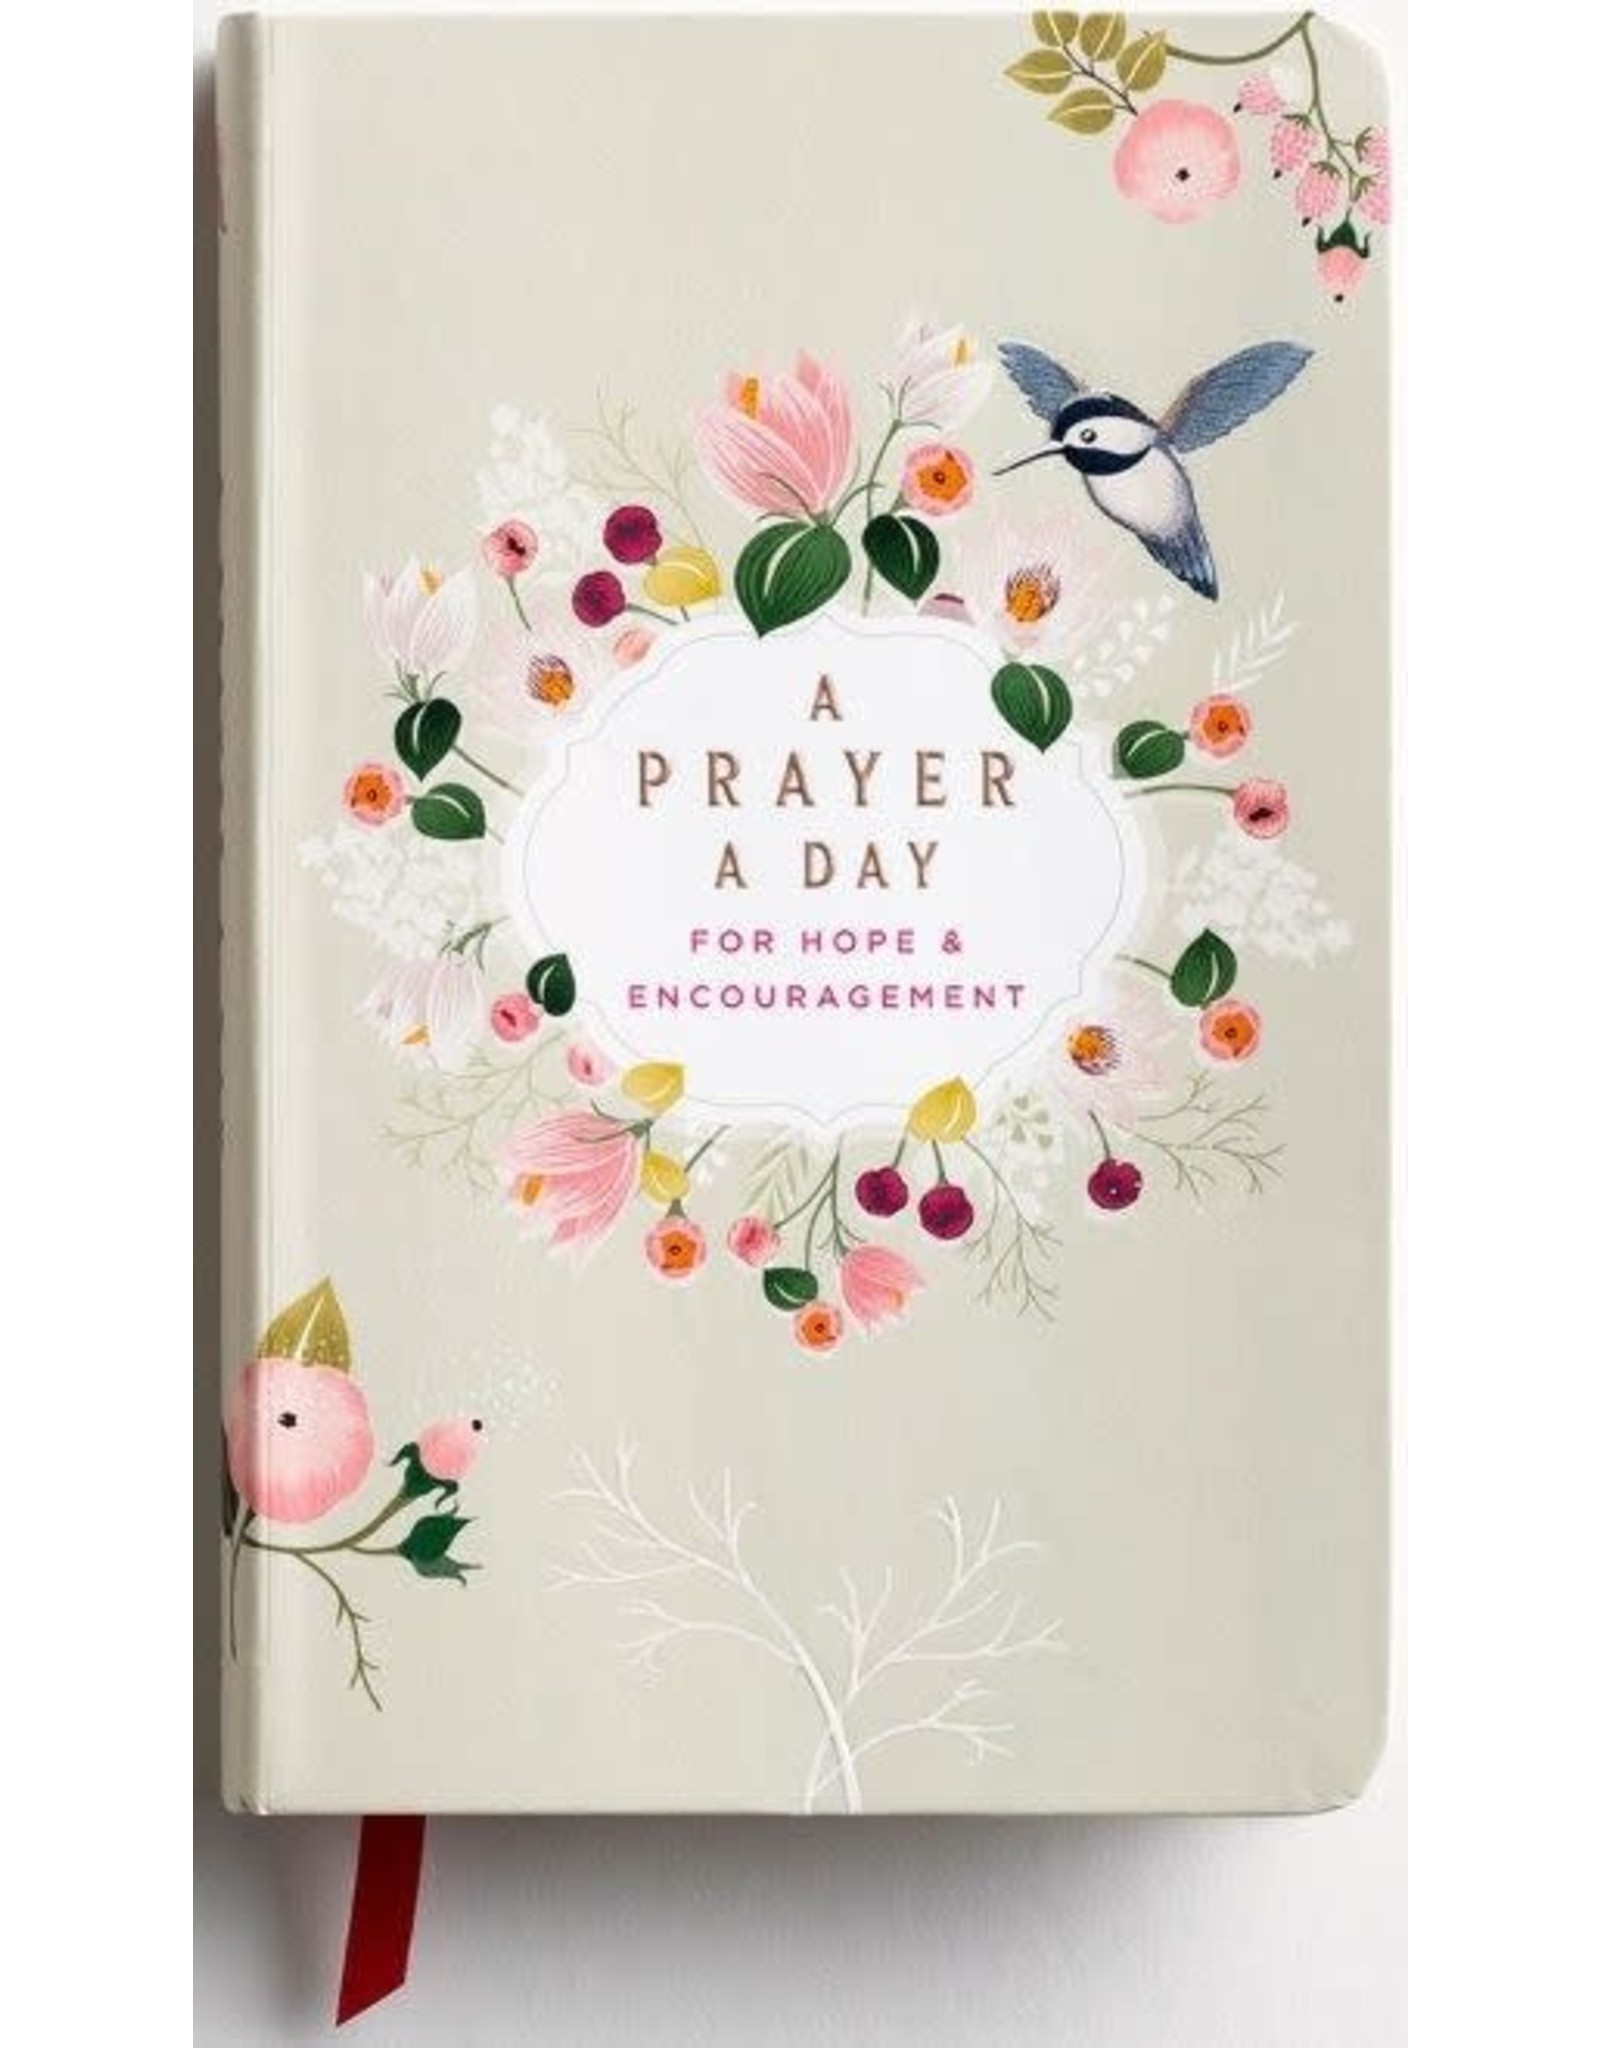 A Prayer A Day-Daily Devotional for Hope and Encouragement